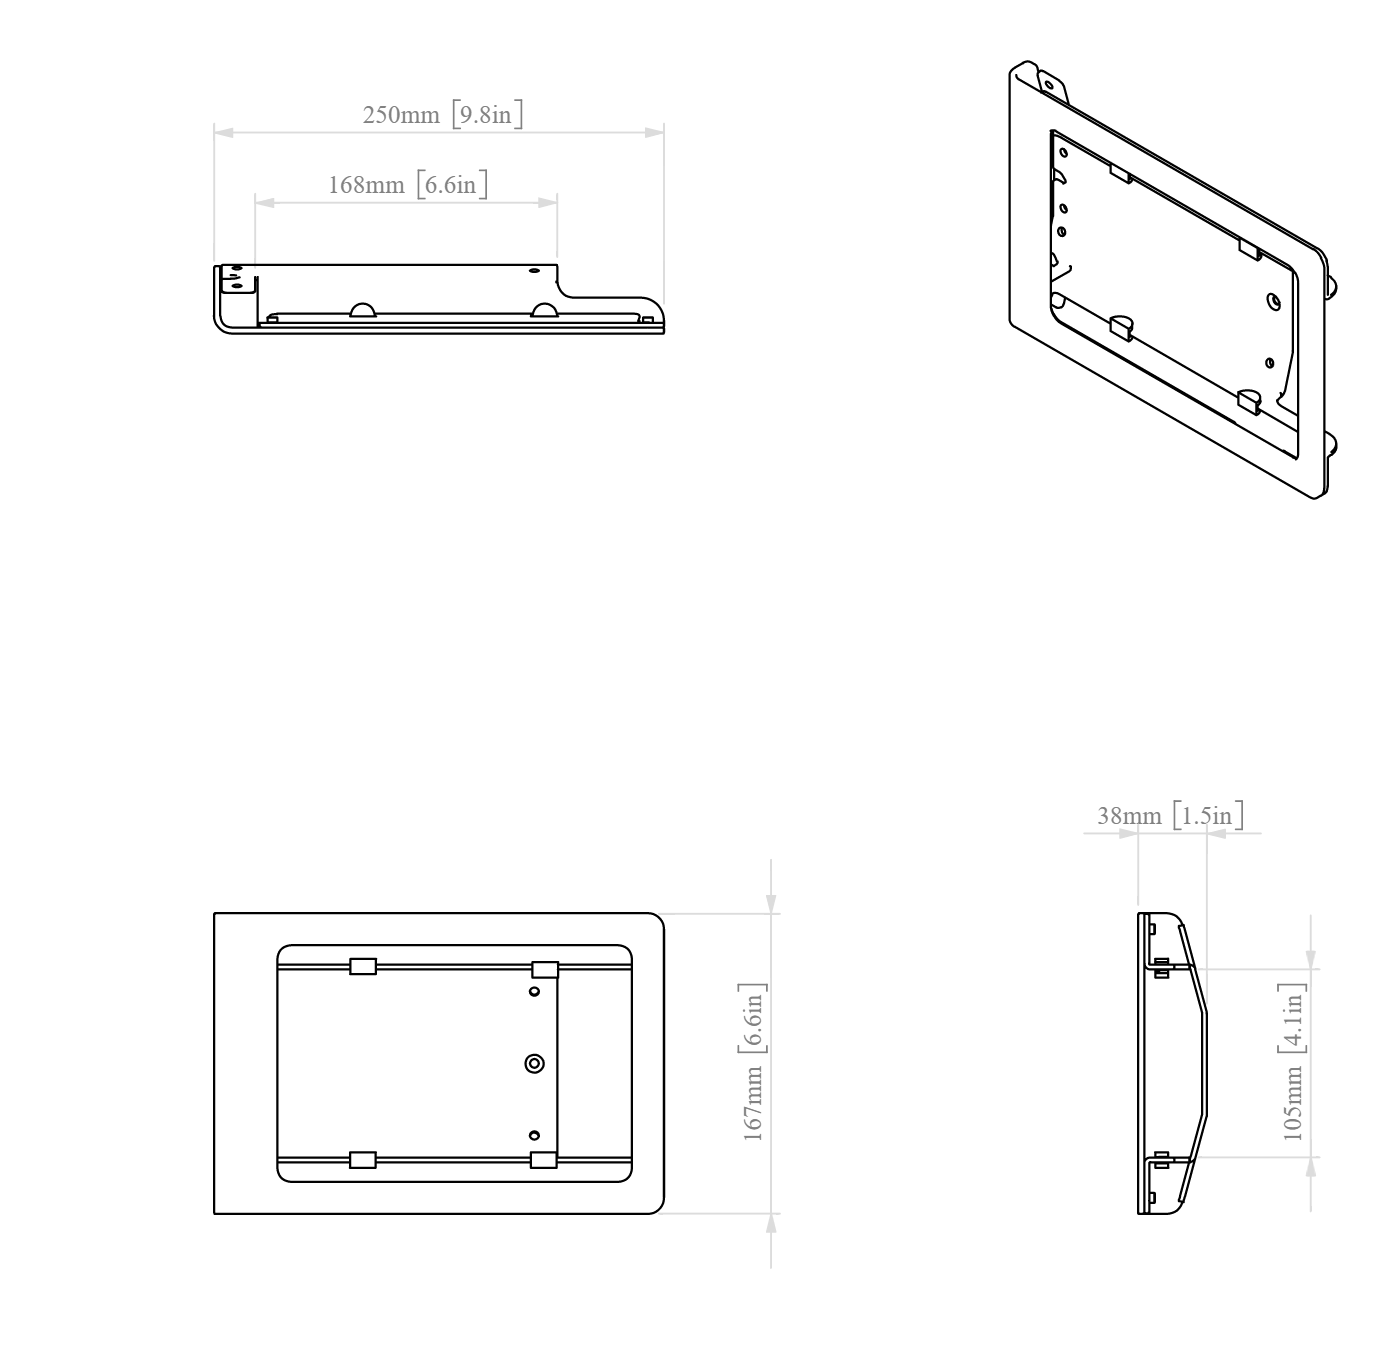 Heckler Windfall Multi Wall Mount for iPad Mini dimensions